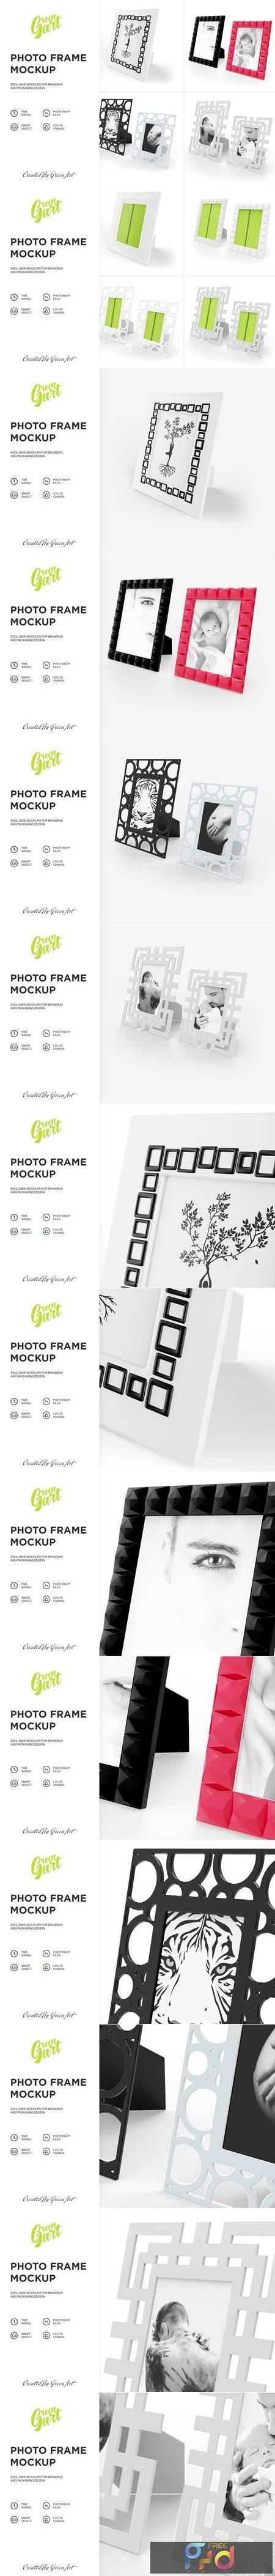 4 PSD Photo Frame Mockup 2332093 1